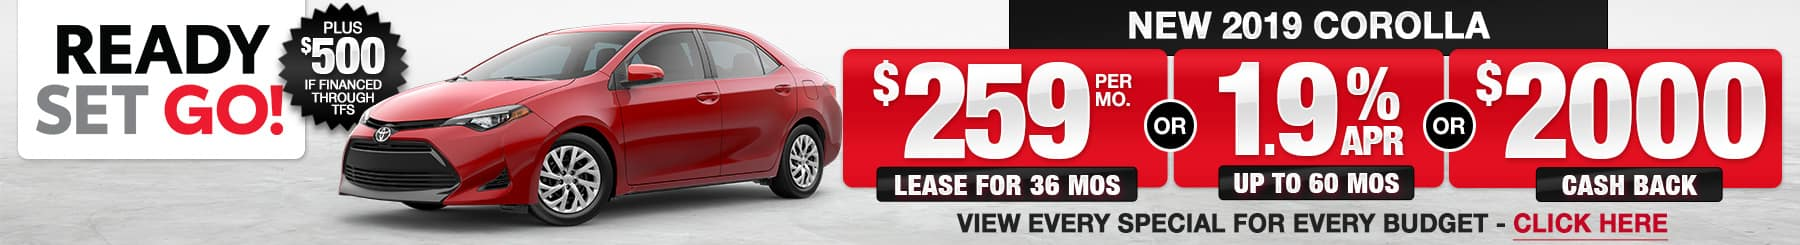 2019 Corolla Lease or Finance Offers